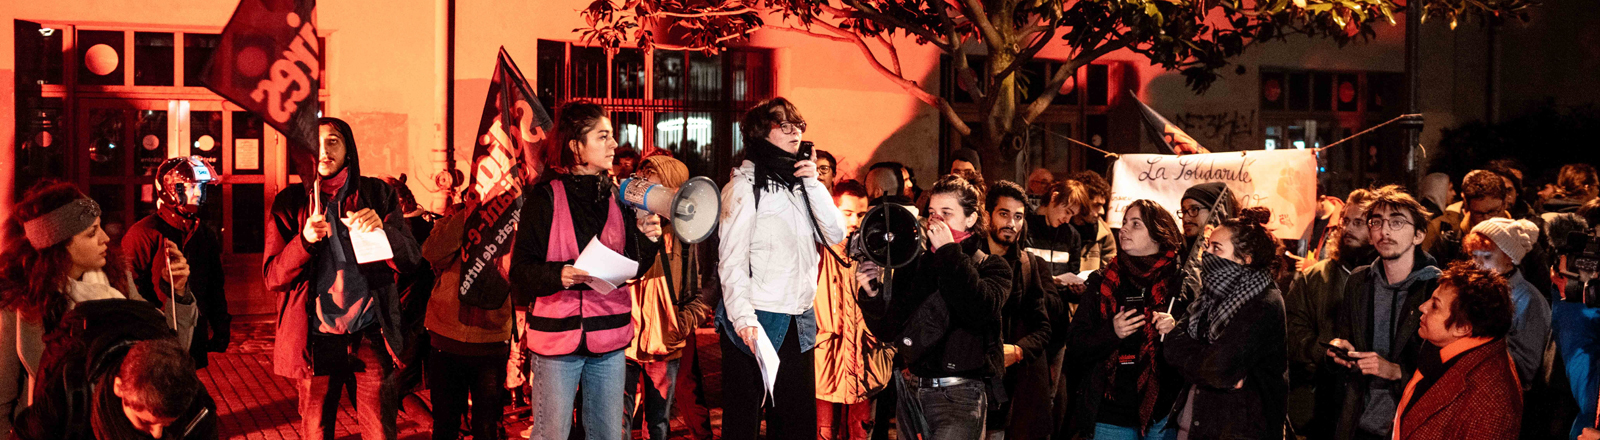 FRANCE - MEETING AGAINST STUDENT INSECURITY Following the immolation of a student. Students gathered in front of the Tolibiac Crus to demonstrate against student precariousness.